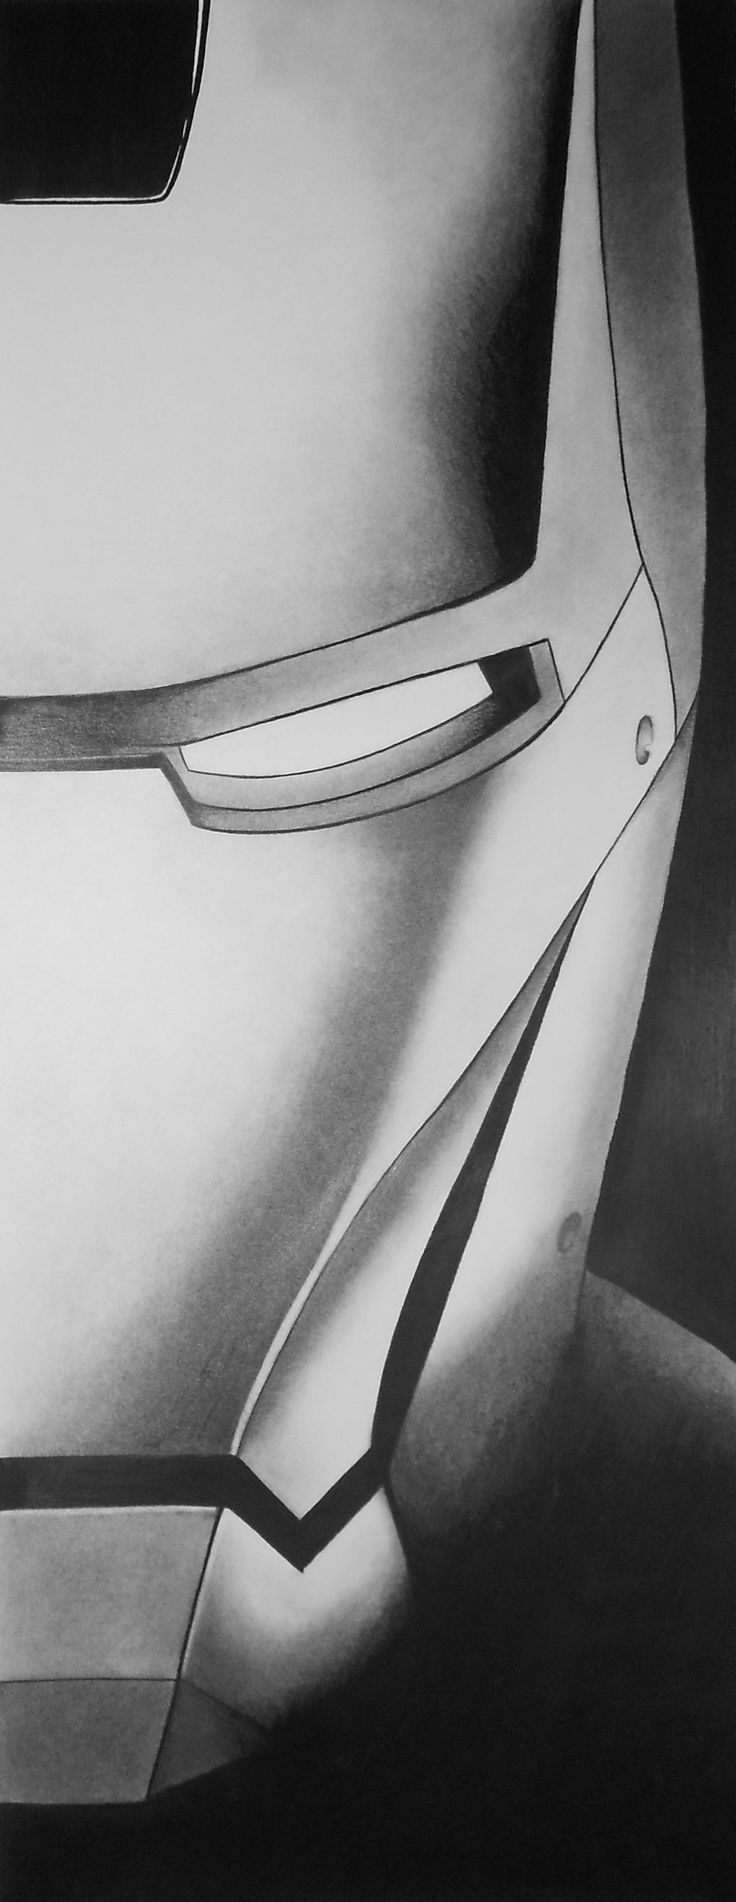 Pencil w/shading #2  Iron man drawing made from shading pencils